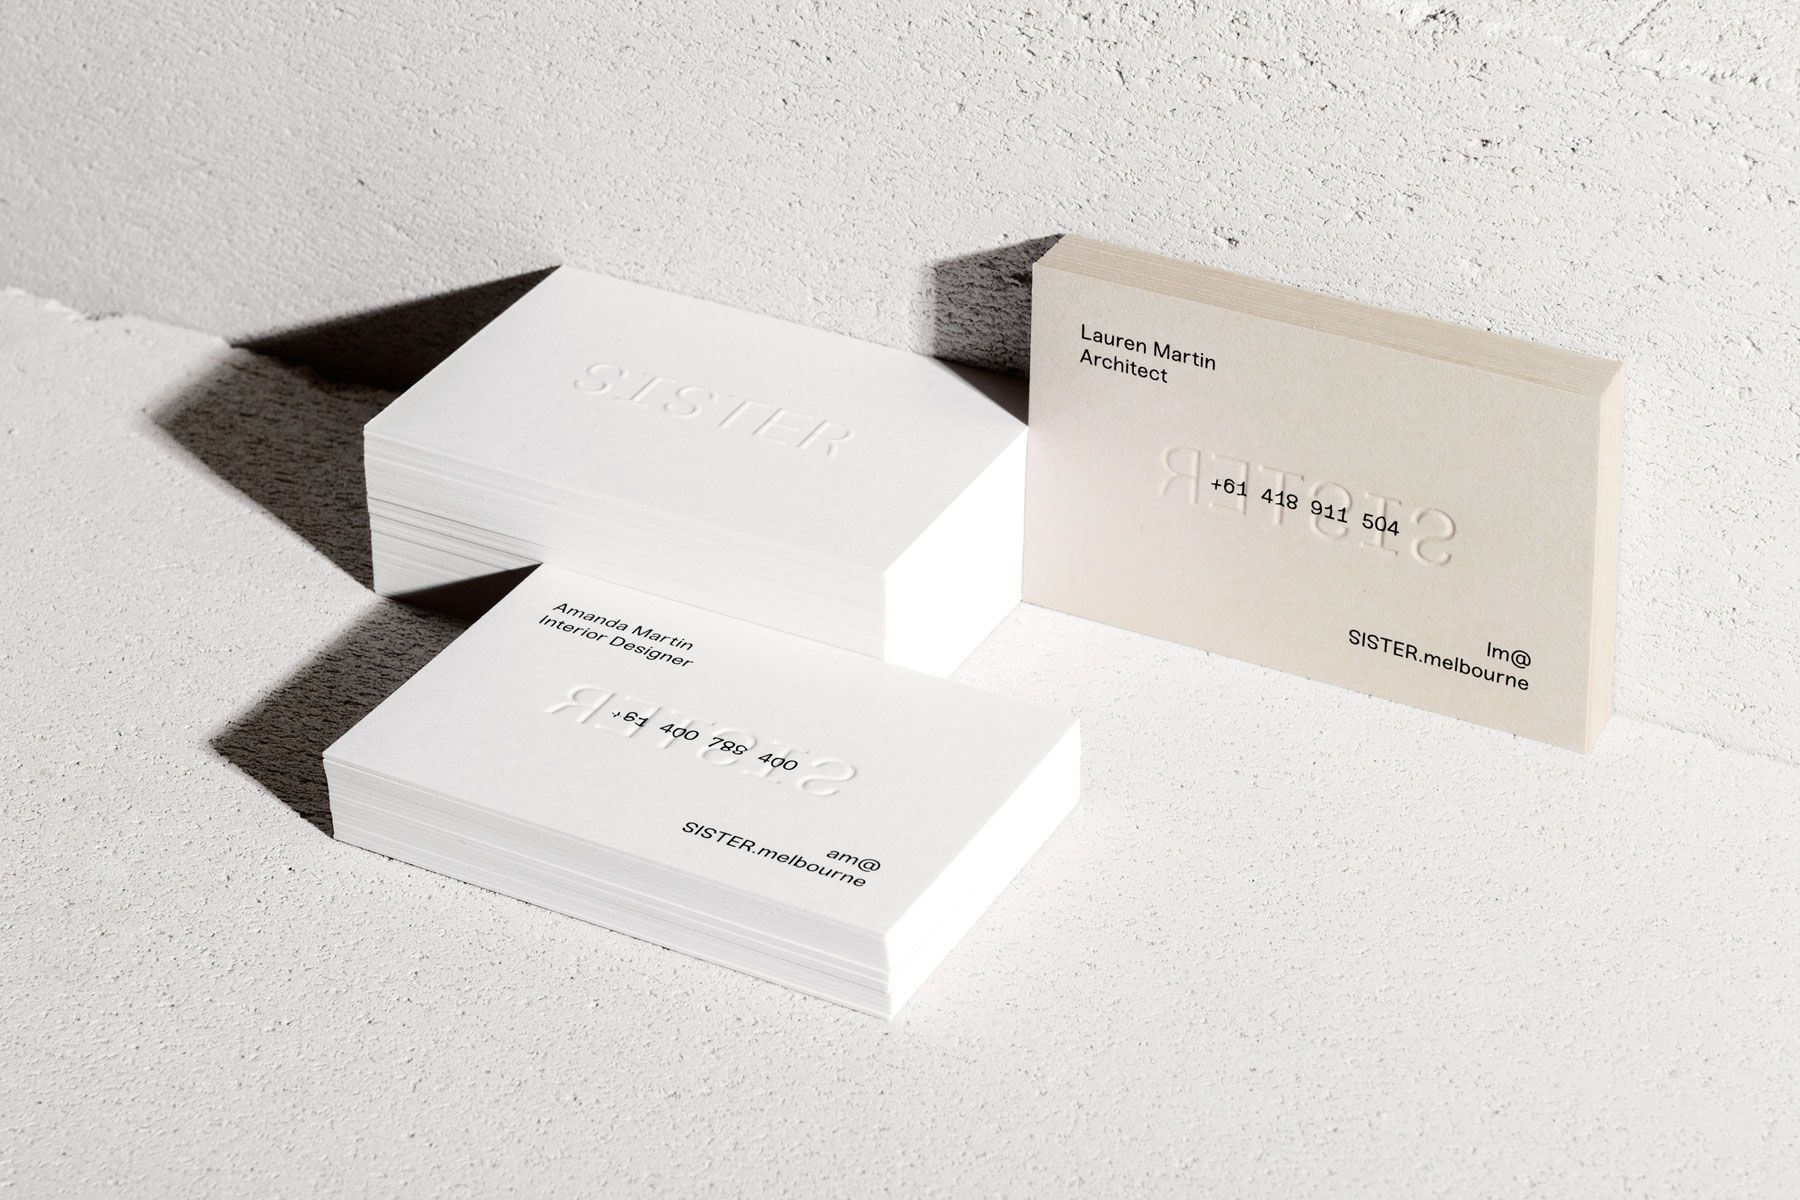 Business cards · sister an architecture and interior design studio run by sisters lauren and amanda martin